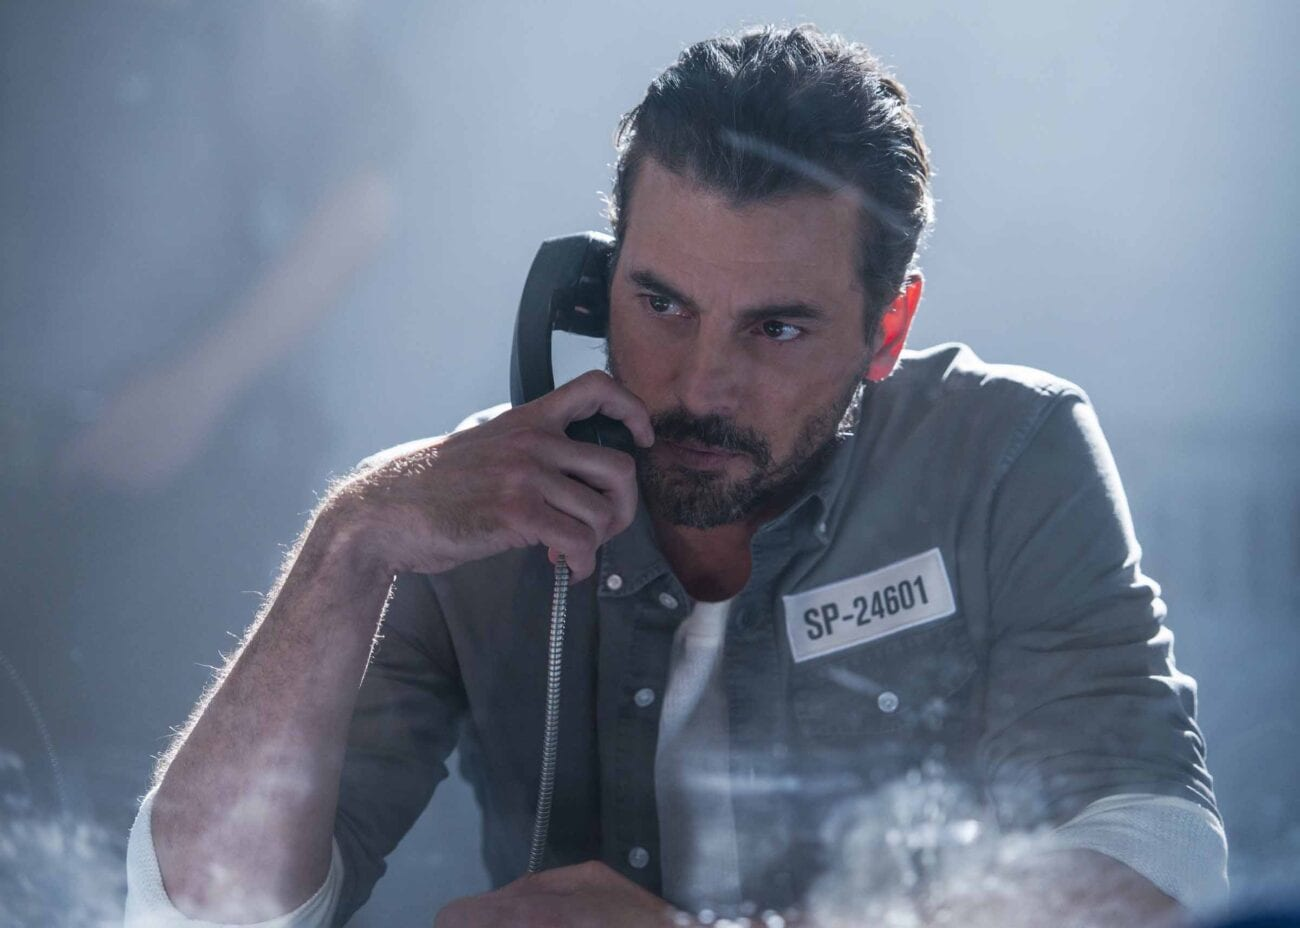 When 'Riverdale' returns for season 5, two parents will bid adieu to the show. But Skeet Ulrich is opening up about why he's leaving FP Jones behind.